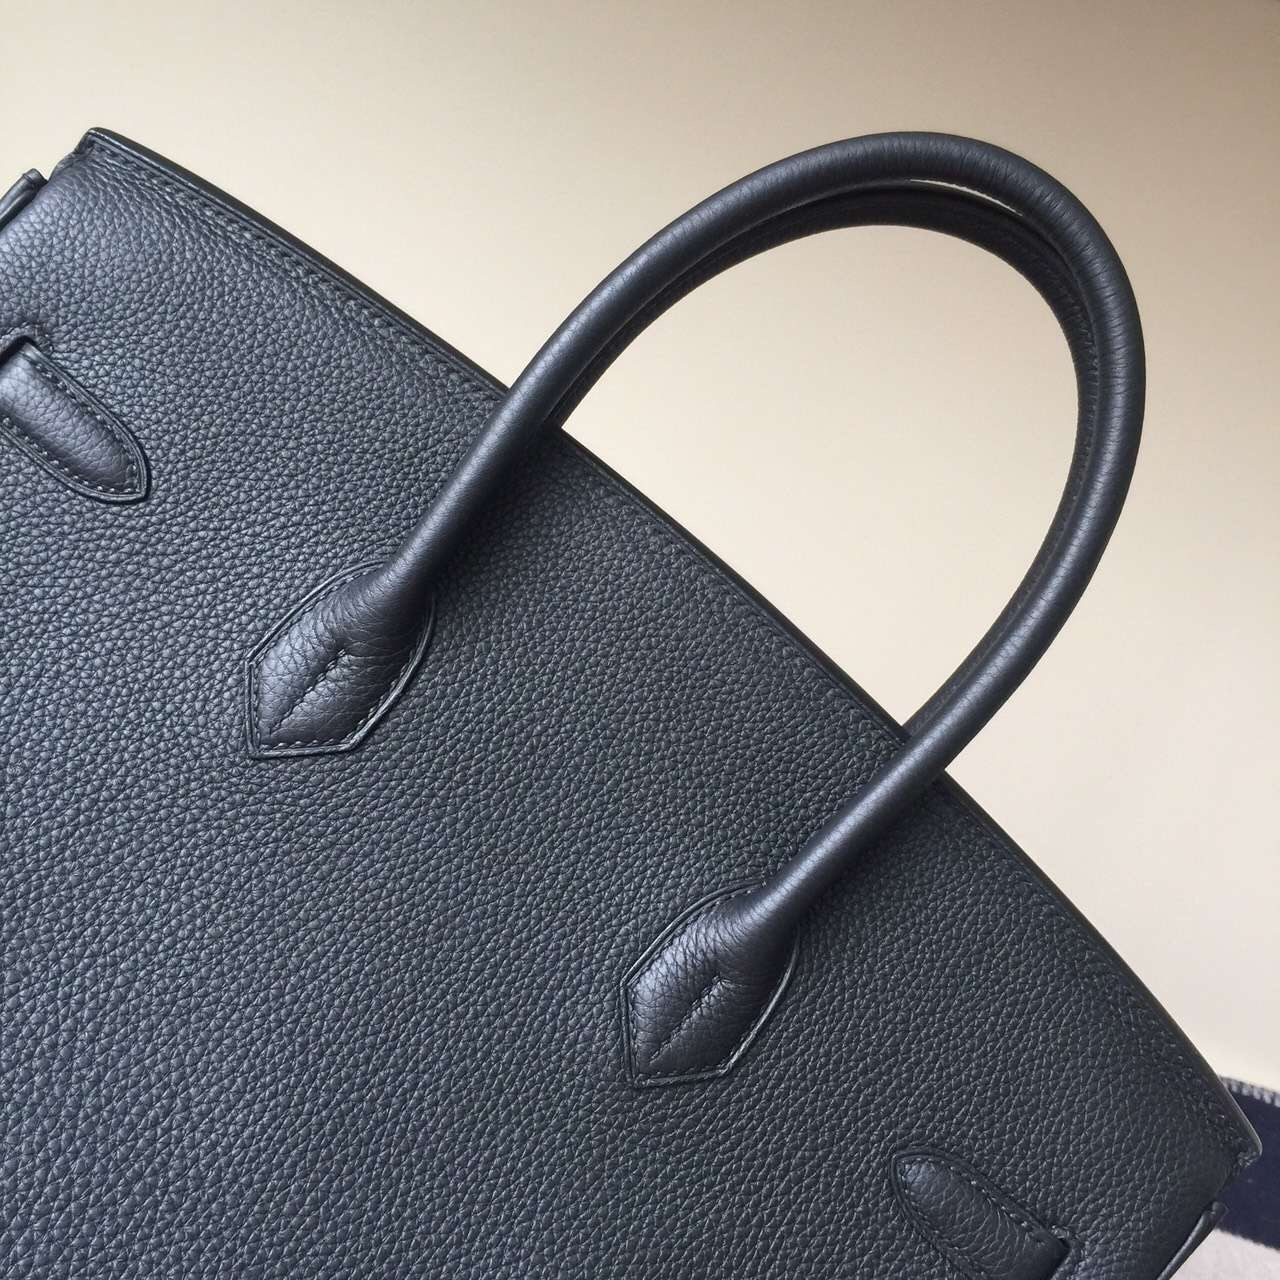 Hermes Classic Bag CK89 Black Togo Leather Birkin Bag 35cm